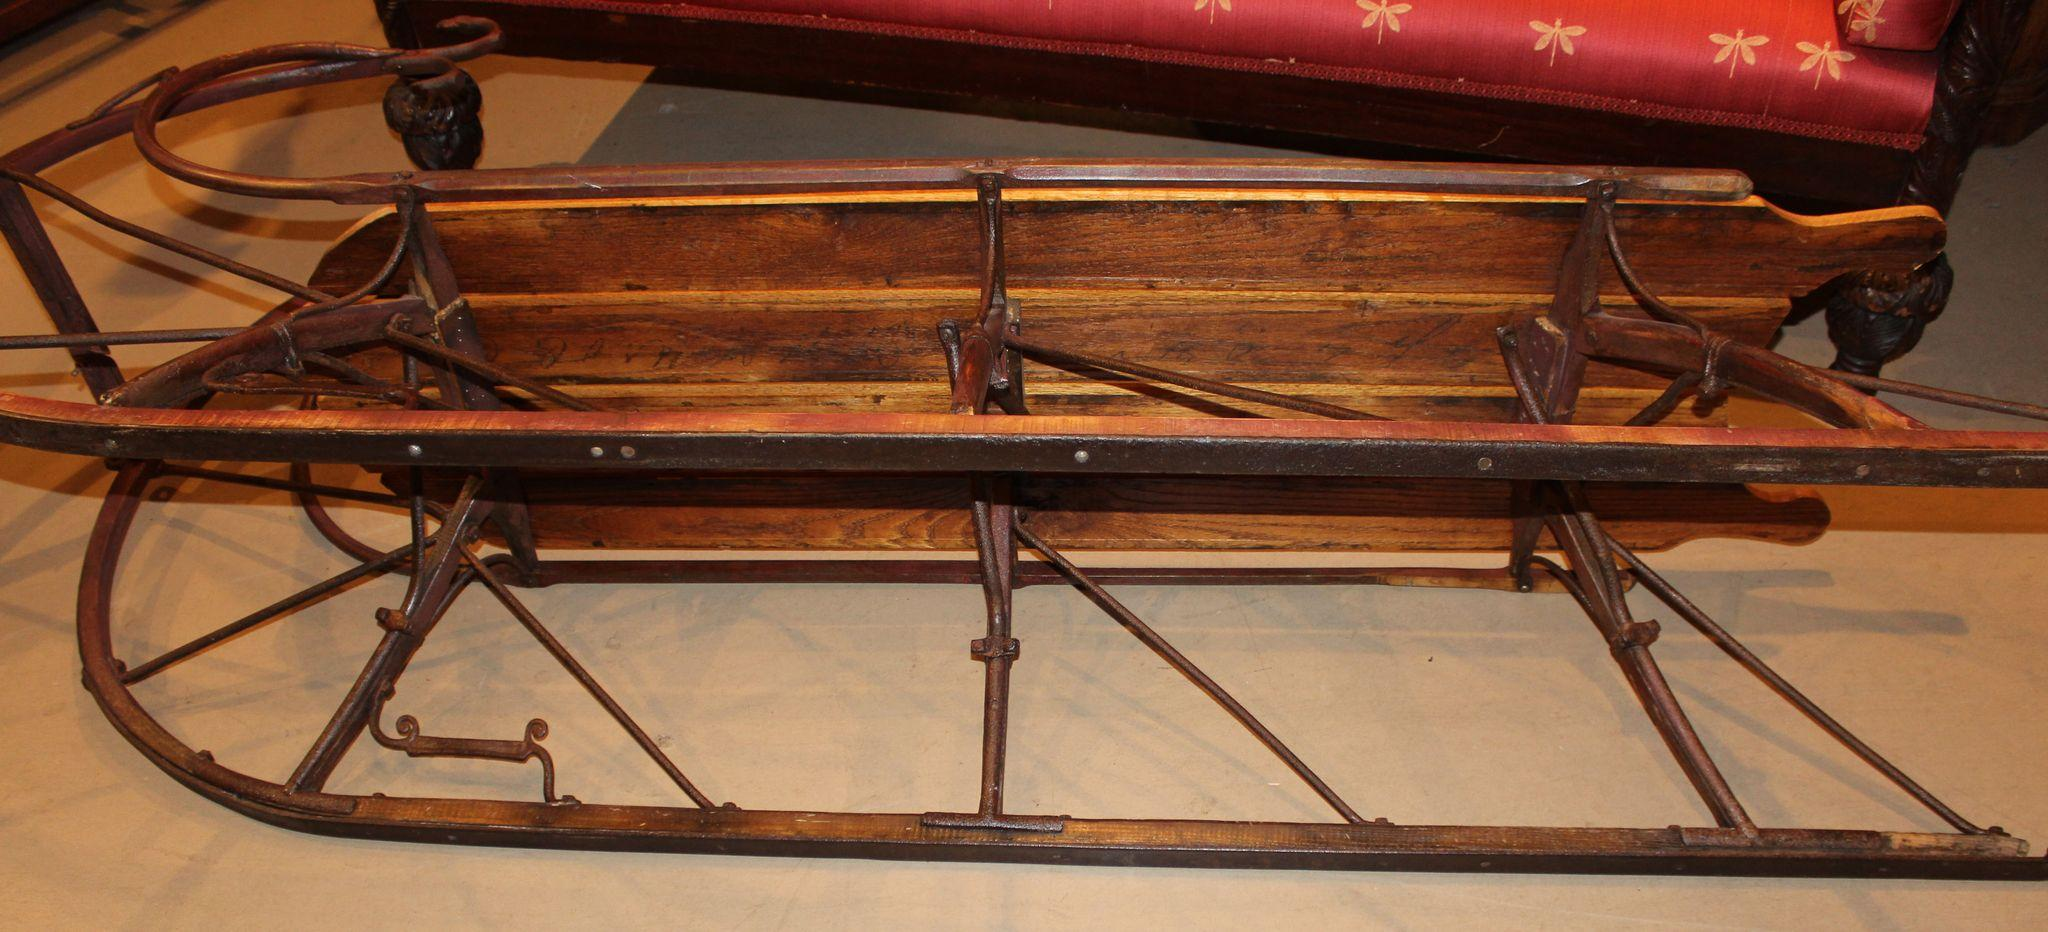 Sleigh coffee tables 19th century american sleigh as coffee table at 1stdibs coffee table in Antique sleigh coffee table